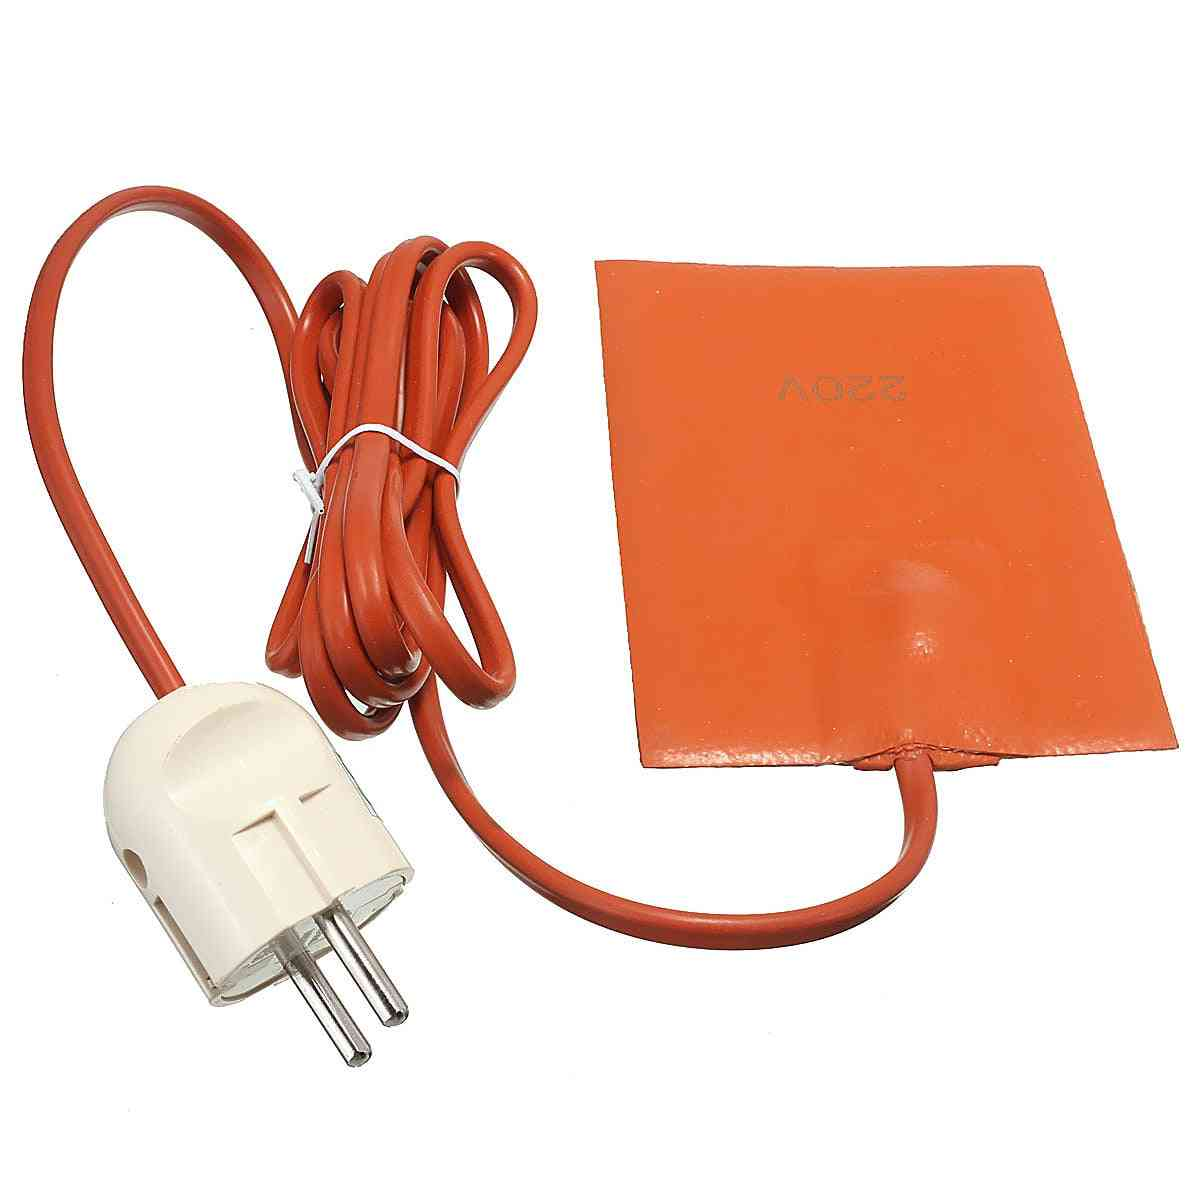 Car Engine, Oil Tank Heater, Silicone Heating Pad, Wear Protect With Eu Plug